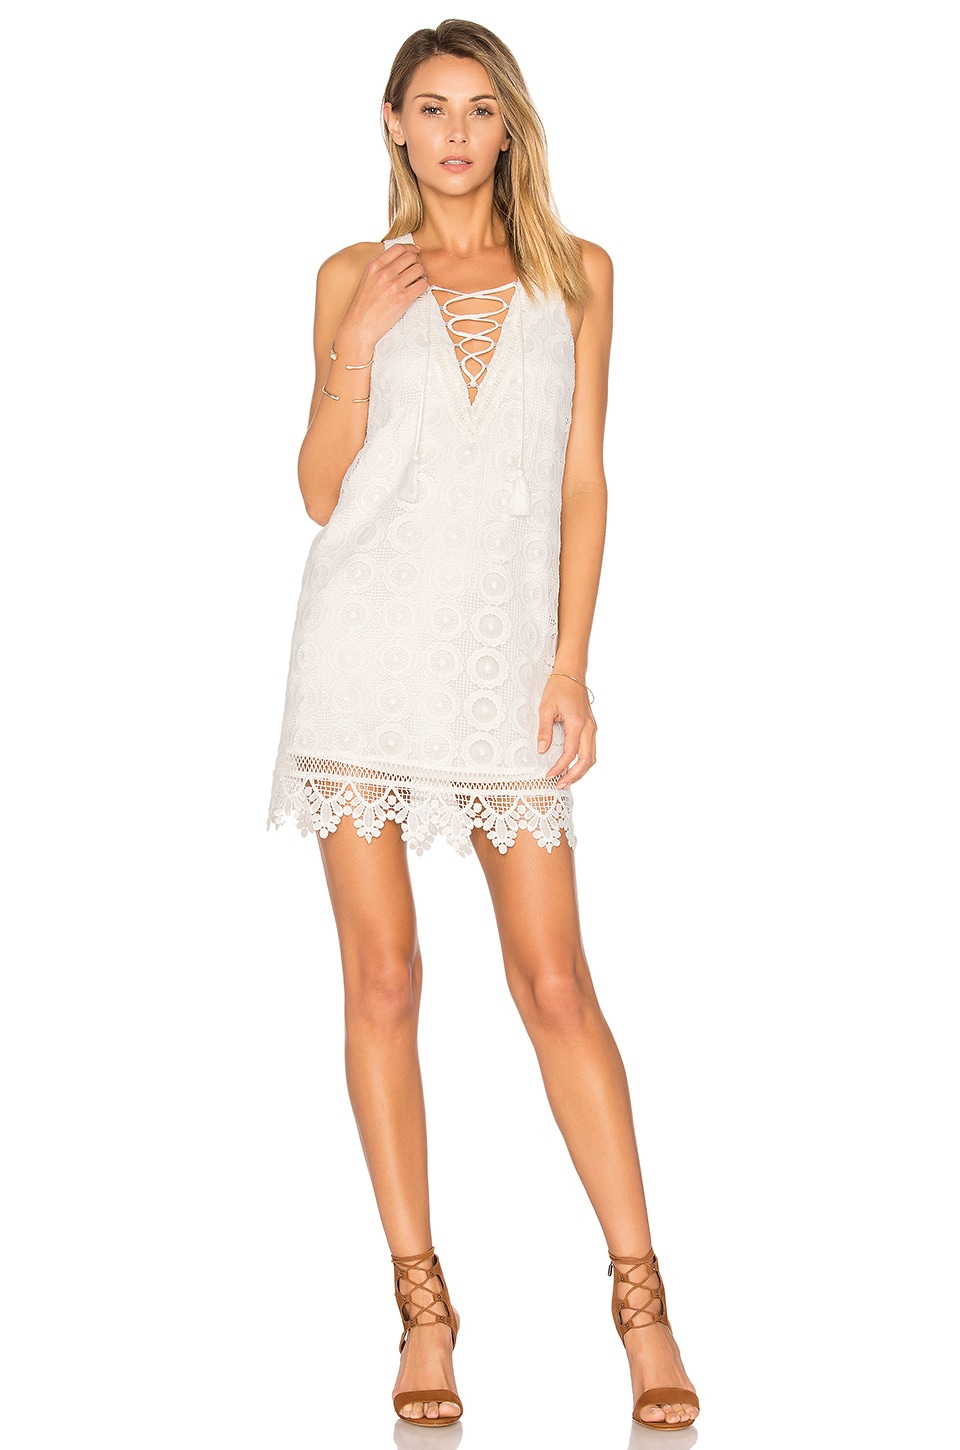 Lovers + Friends Escape Dress in Ivory